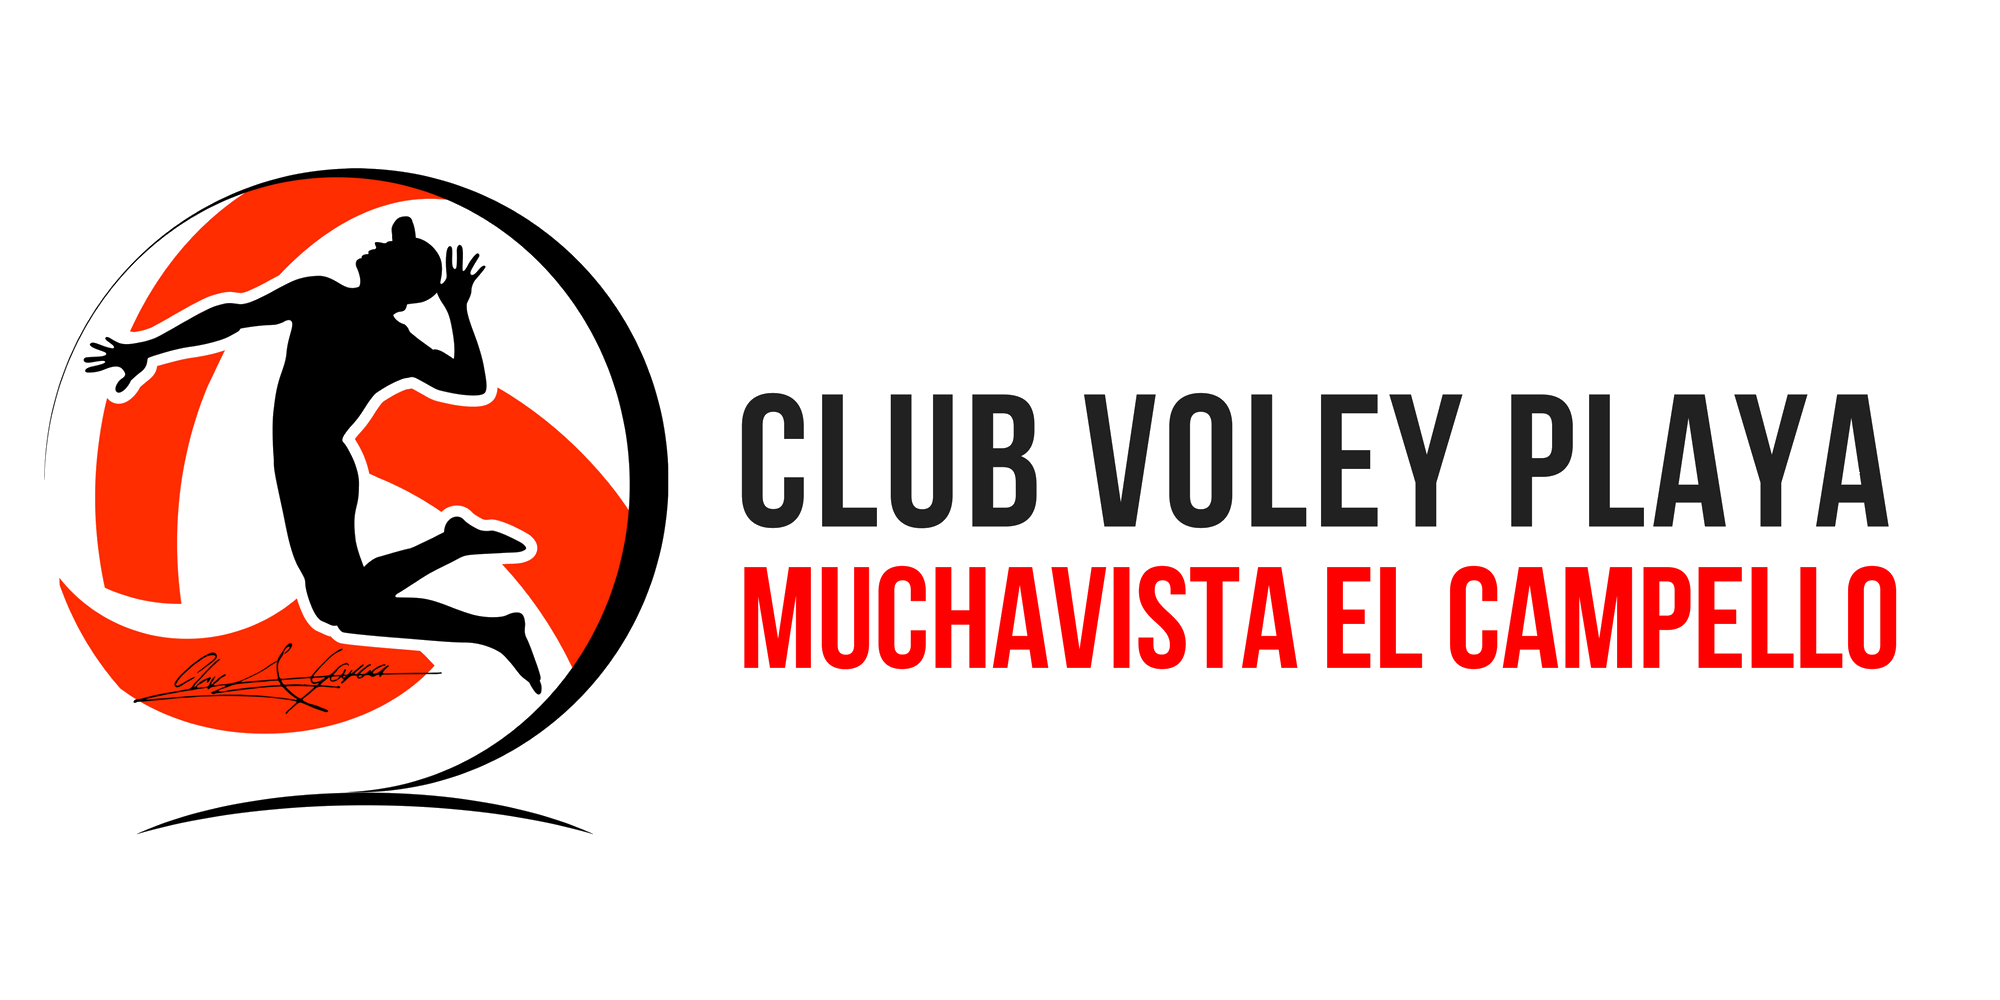 Club Voley Playa Muchavista